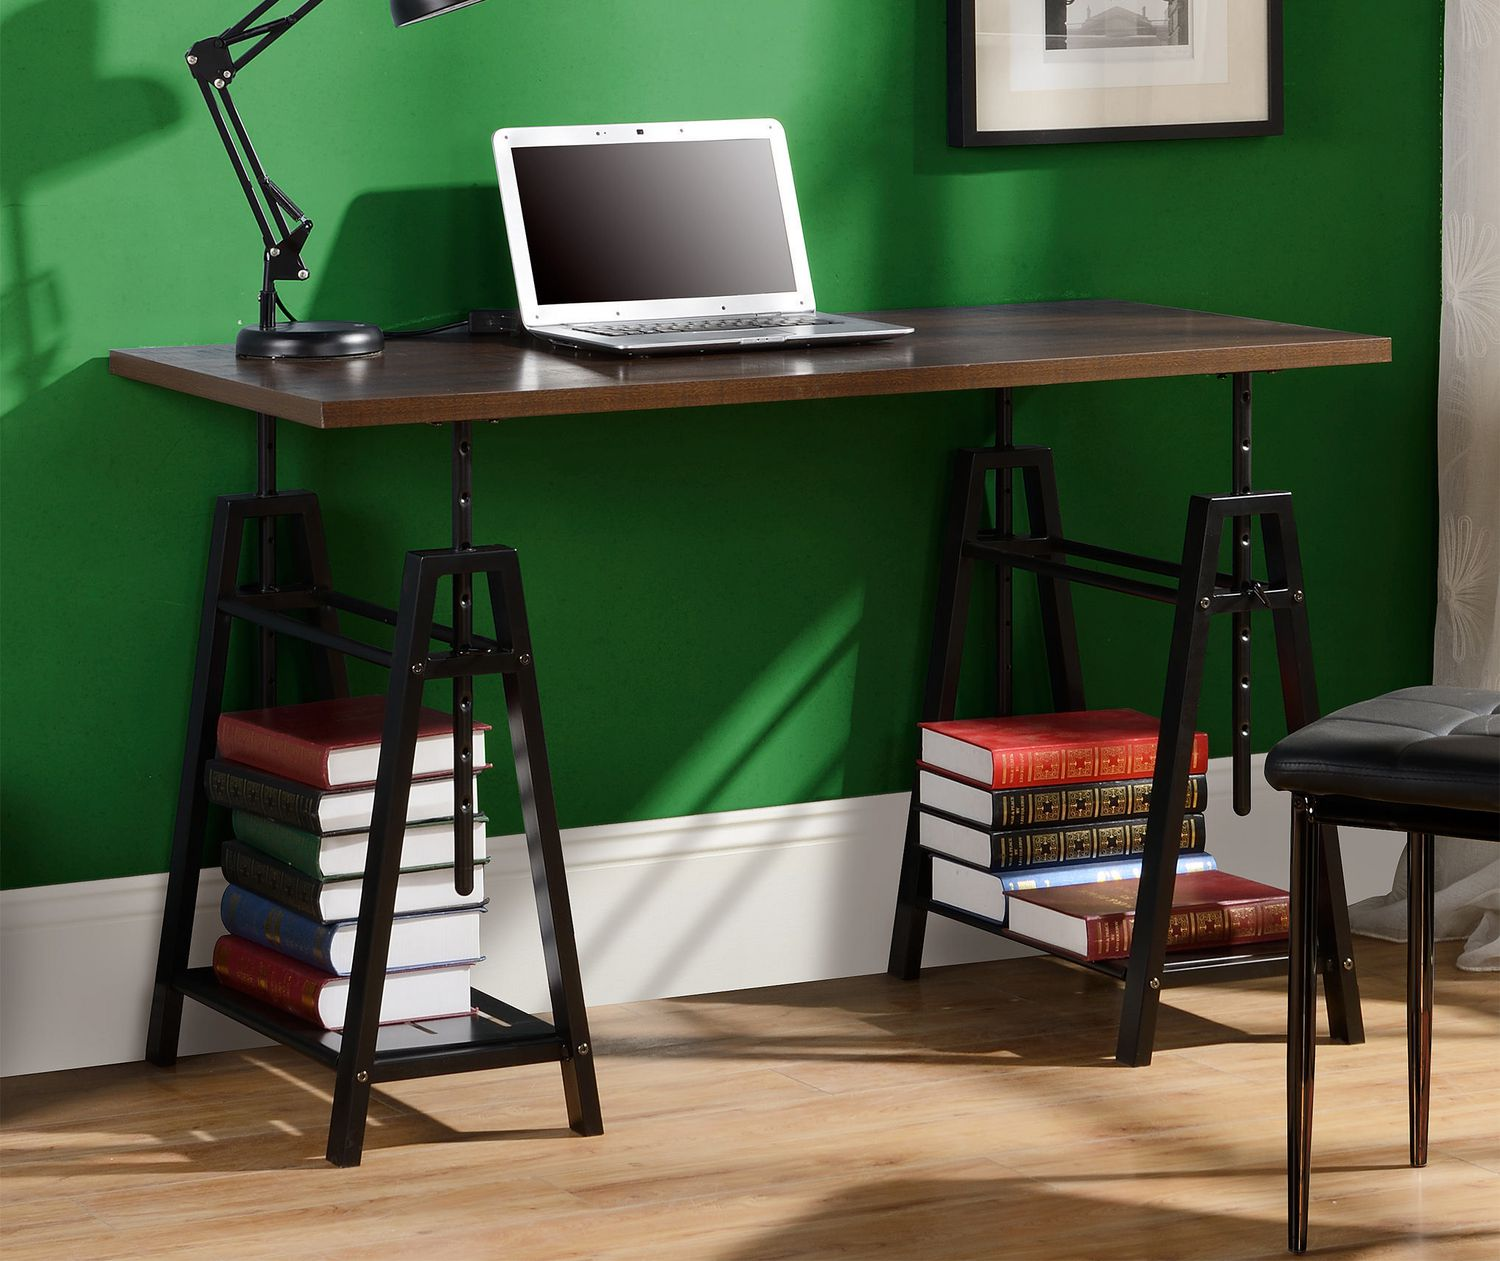 Marvelous Homestar Height Adjustable Desk In Distressed Mocha Ocoug Best Dining Table And Chair Ideas Images Ocougorg